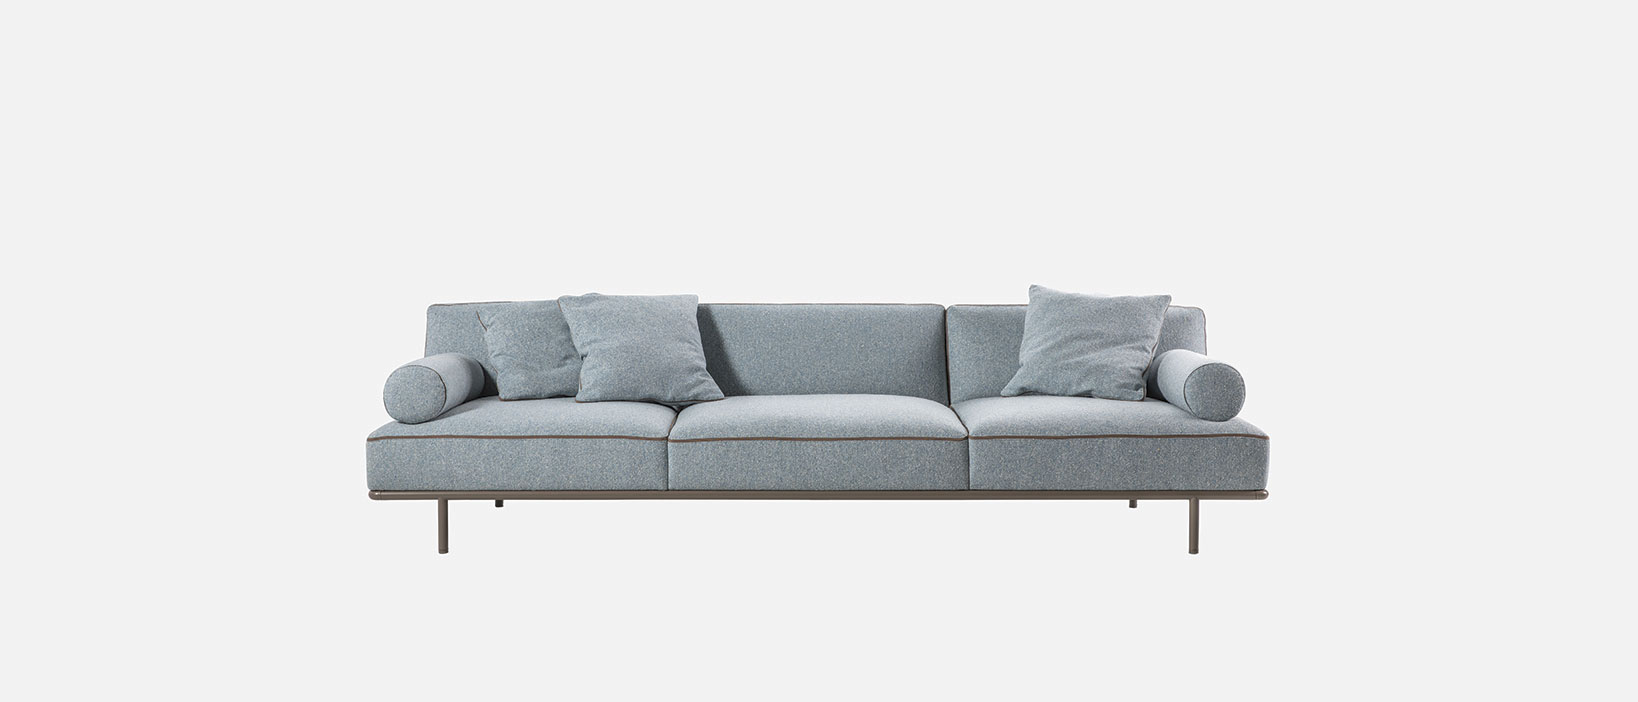 Designer Sofa Hersteller Designer Furniture Italian Interior Design Cappellini